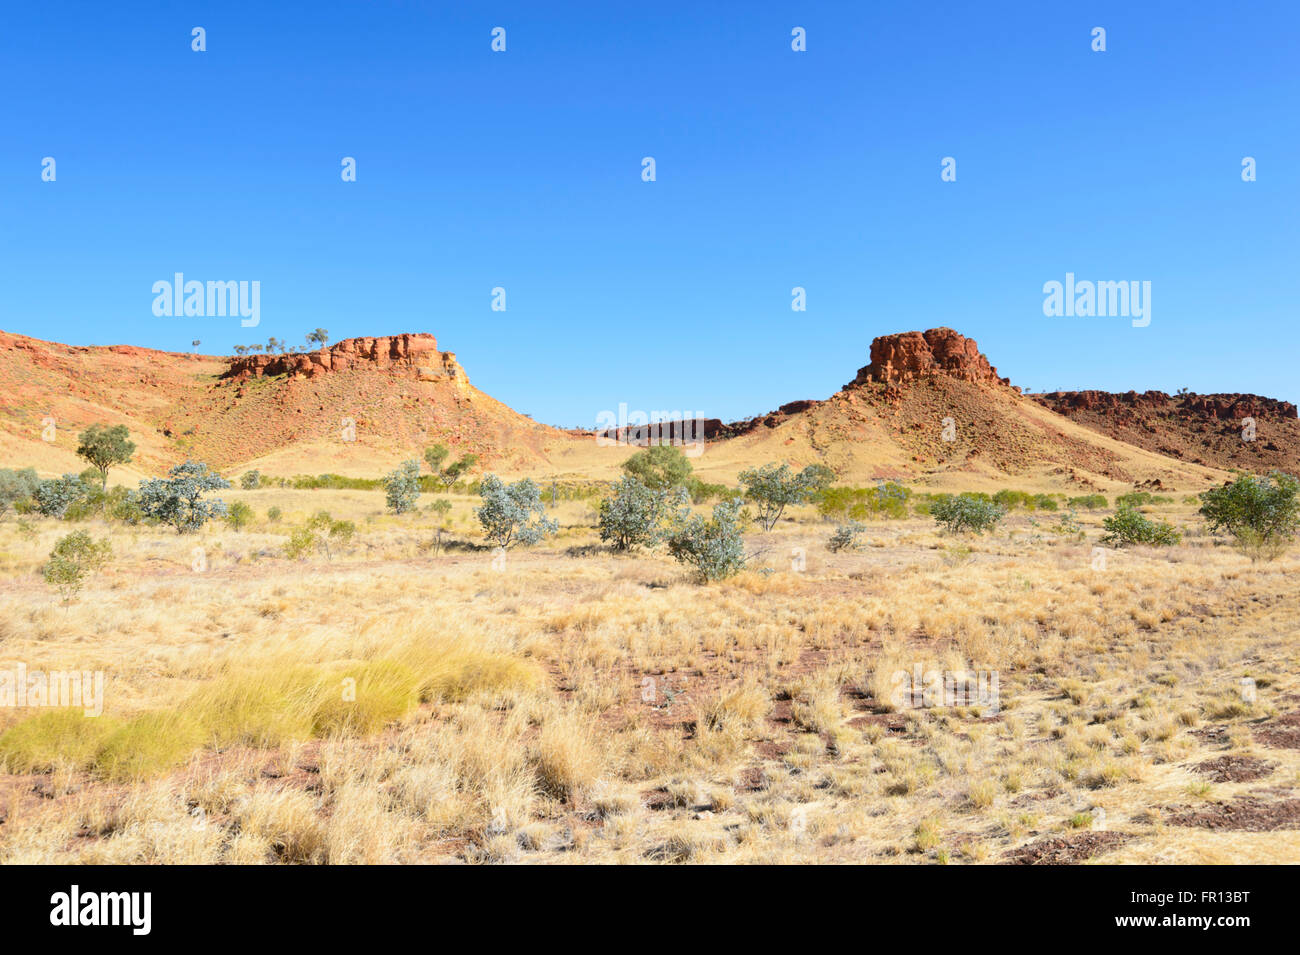 Arid region in the Outback by the Great Northern Highway, Western Australia, WA, Australia Stock Photo